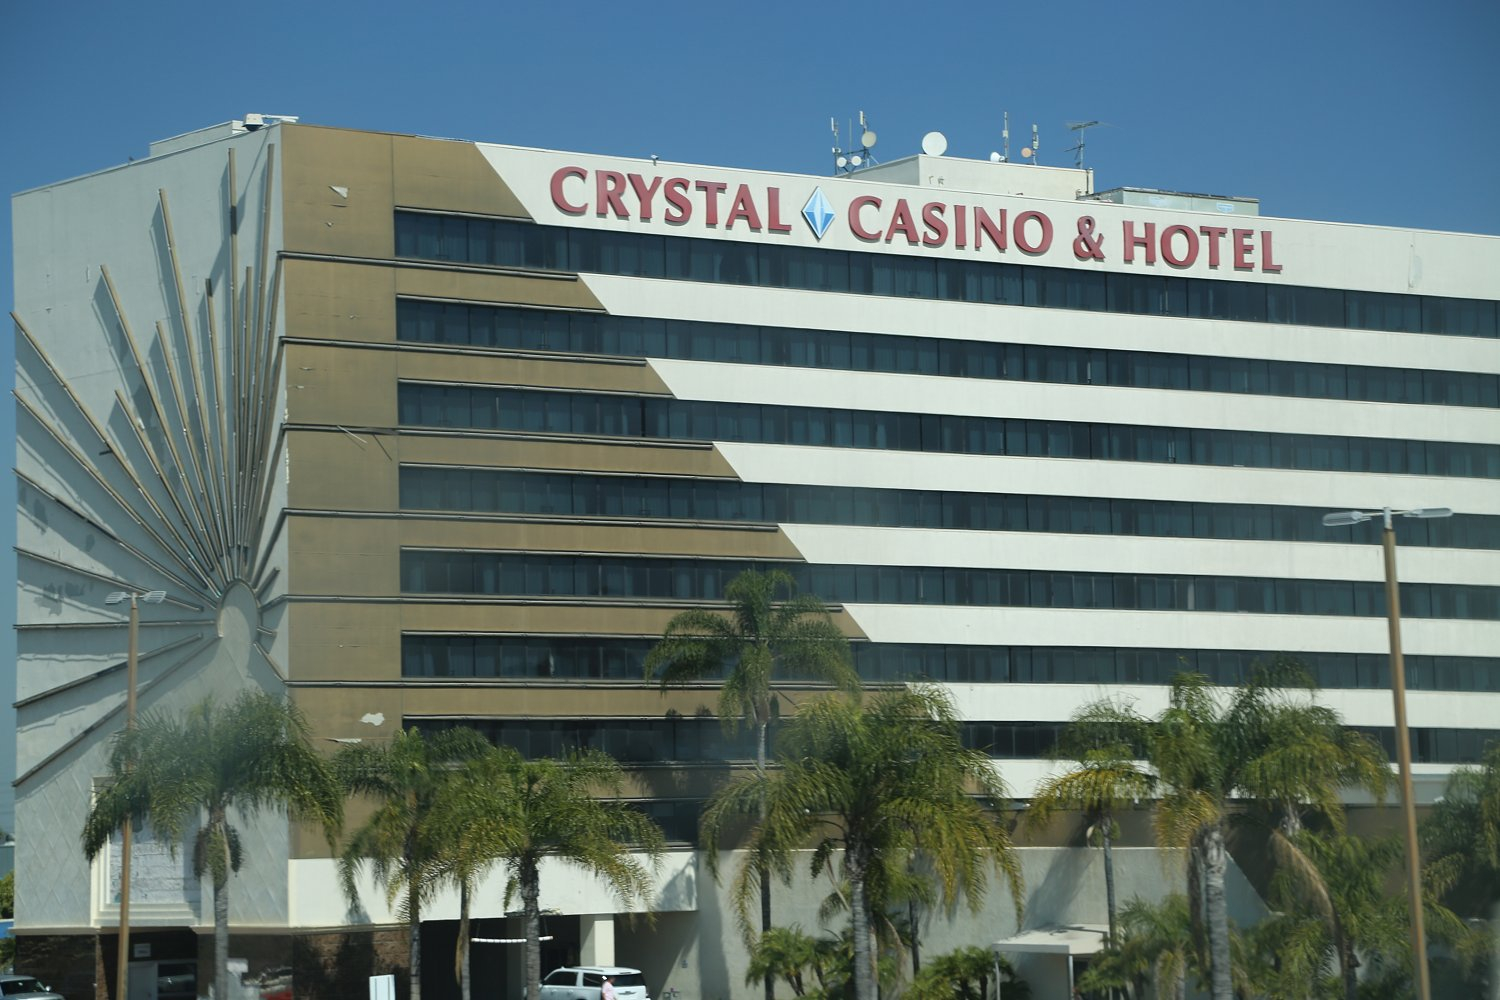 Closest casino to los angeles with slot machines